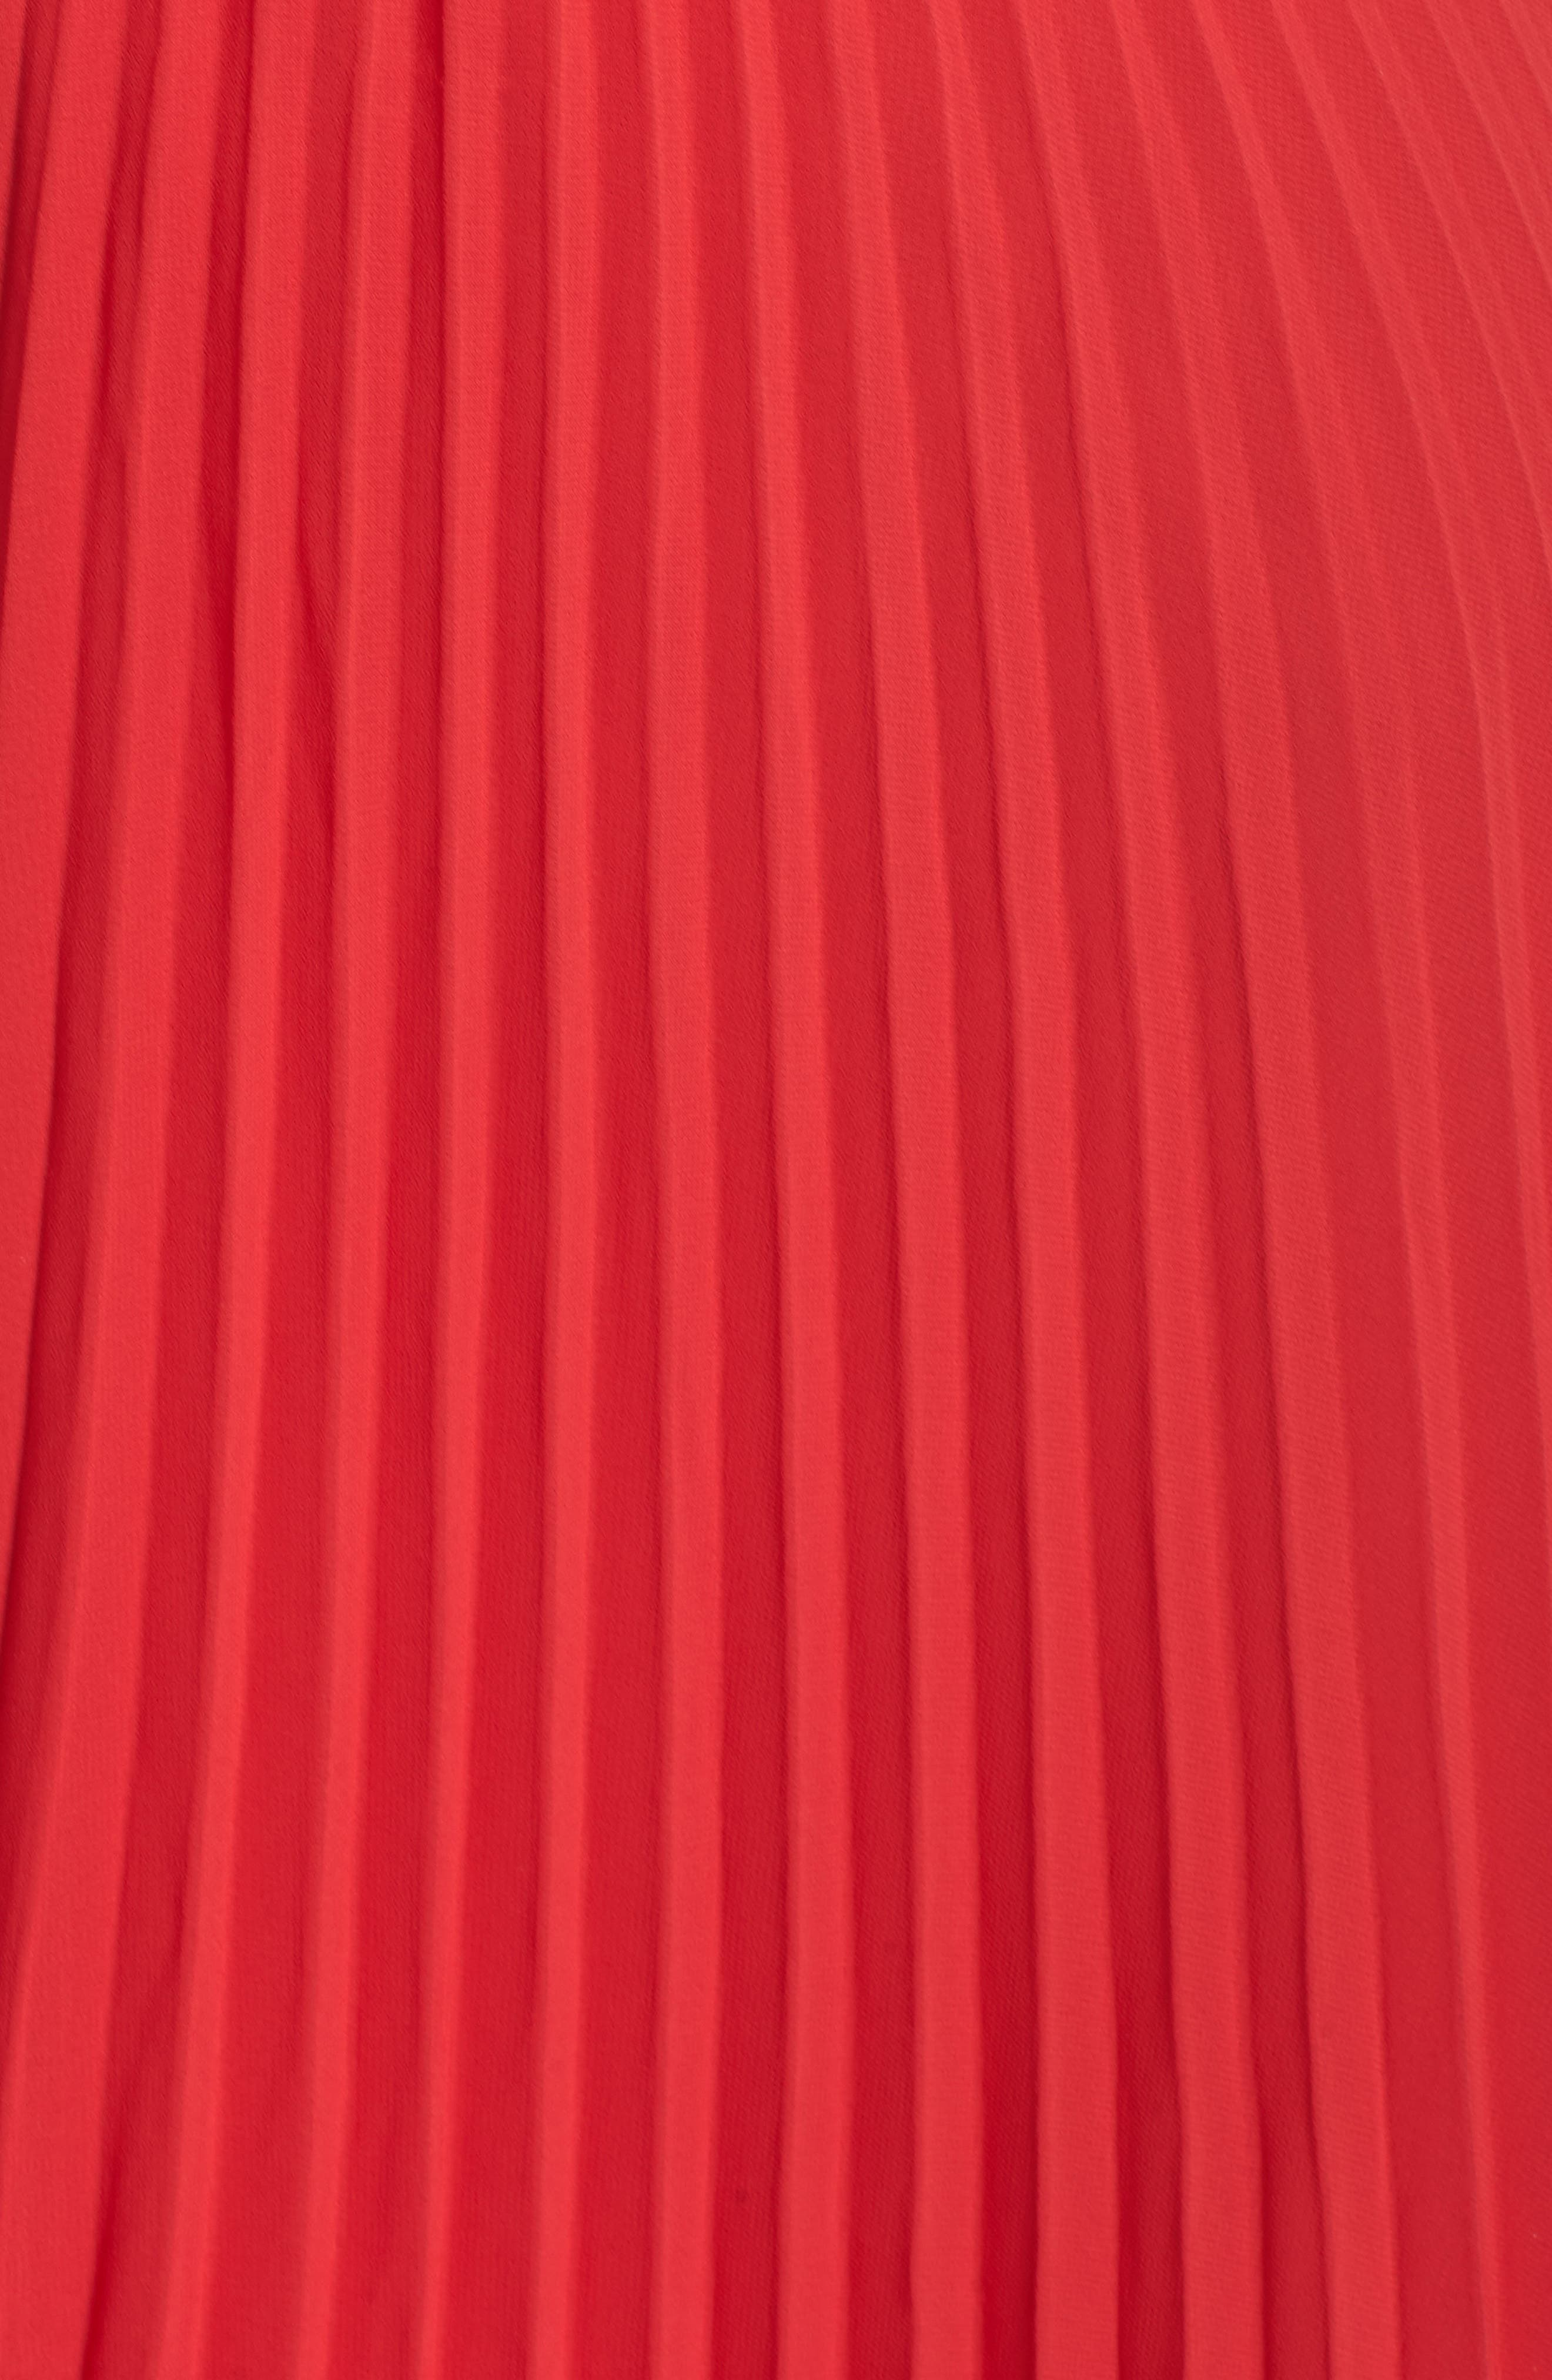 One-Shoulder Pleat Chiffon Gown,                             Alternate thumbnail 6, color,                             Red